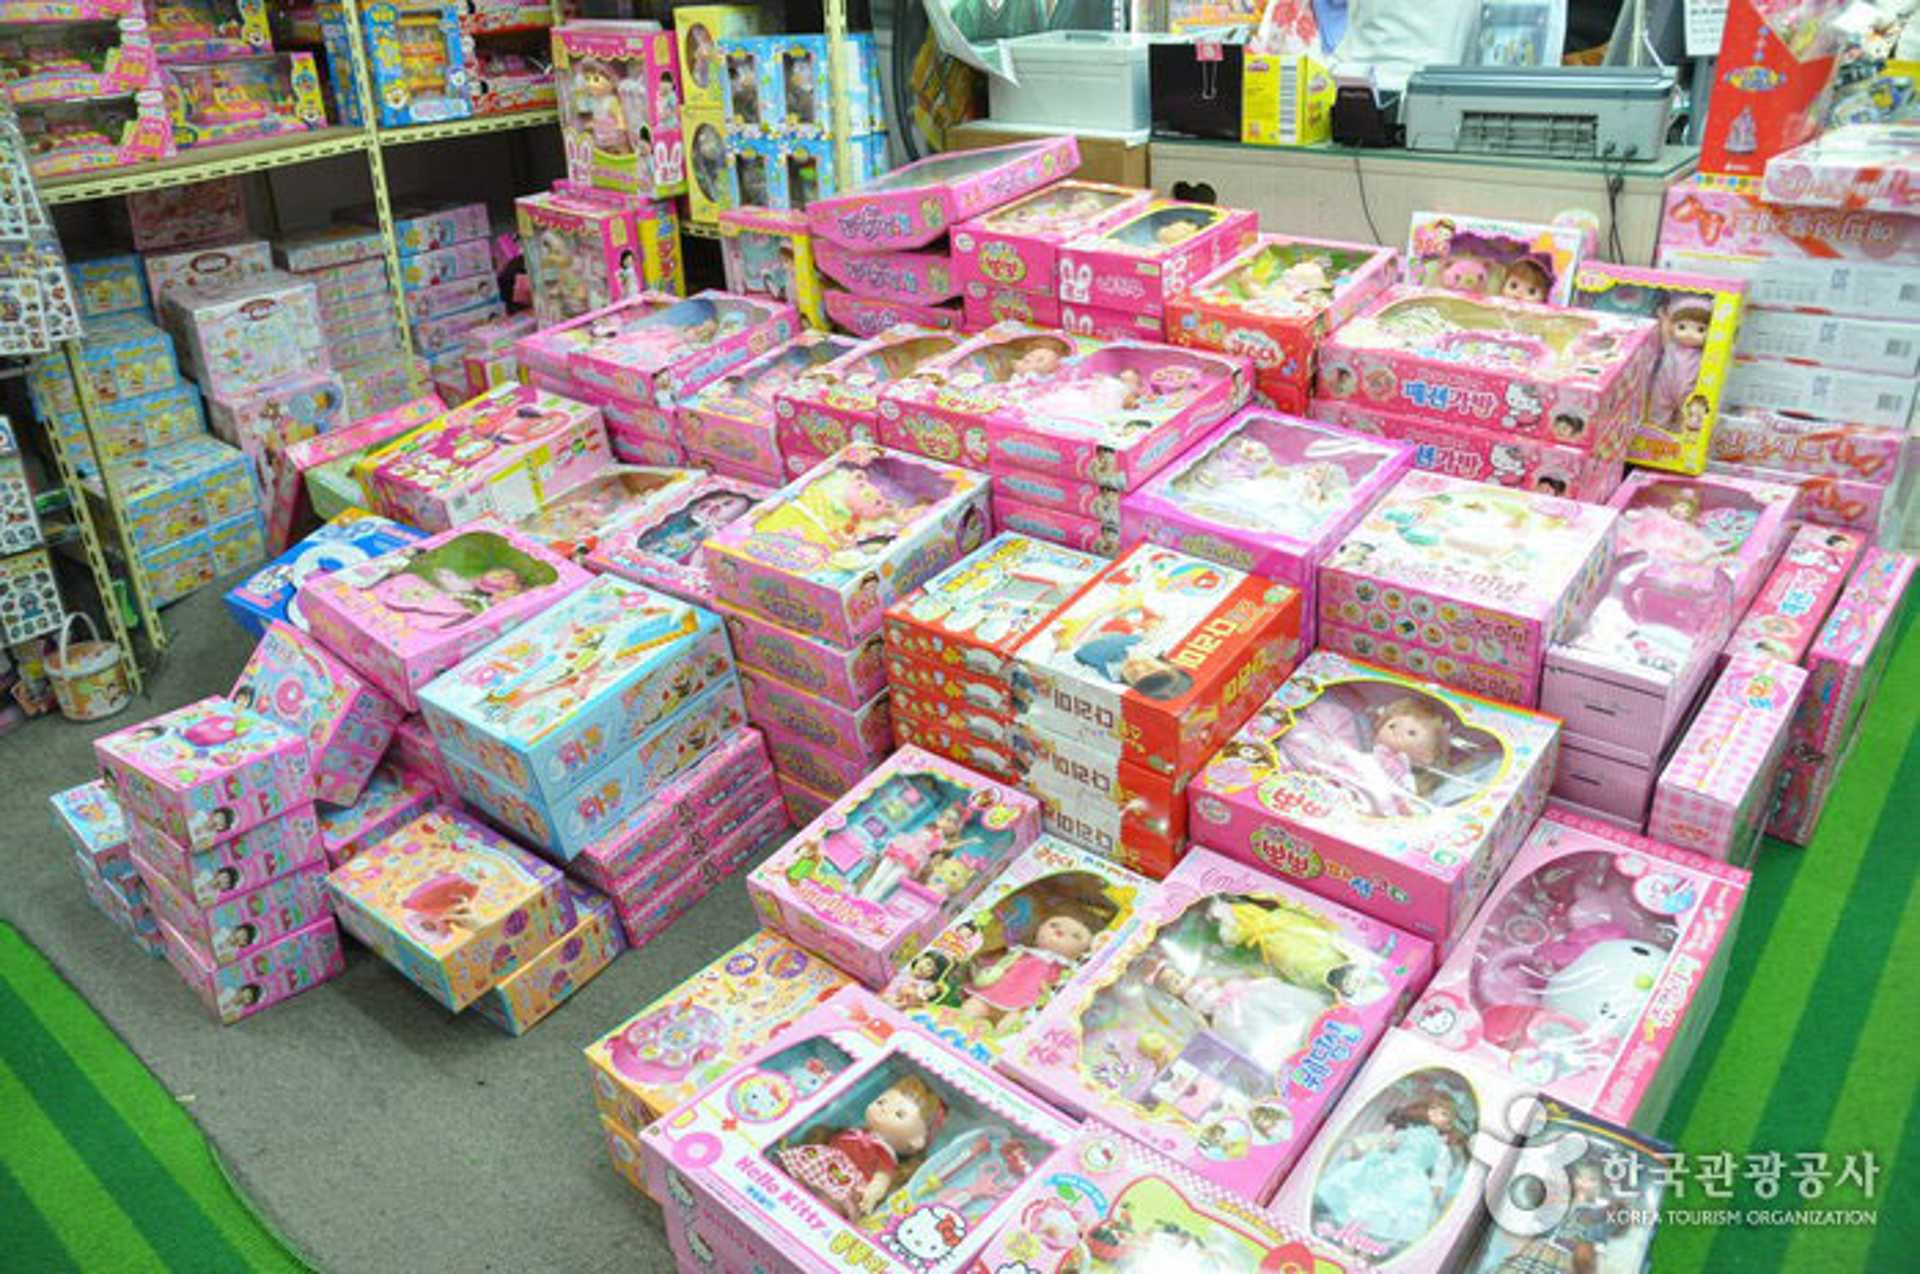 Dongdaemun-Toys-and-Stationery-Street-3